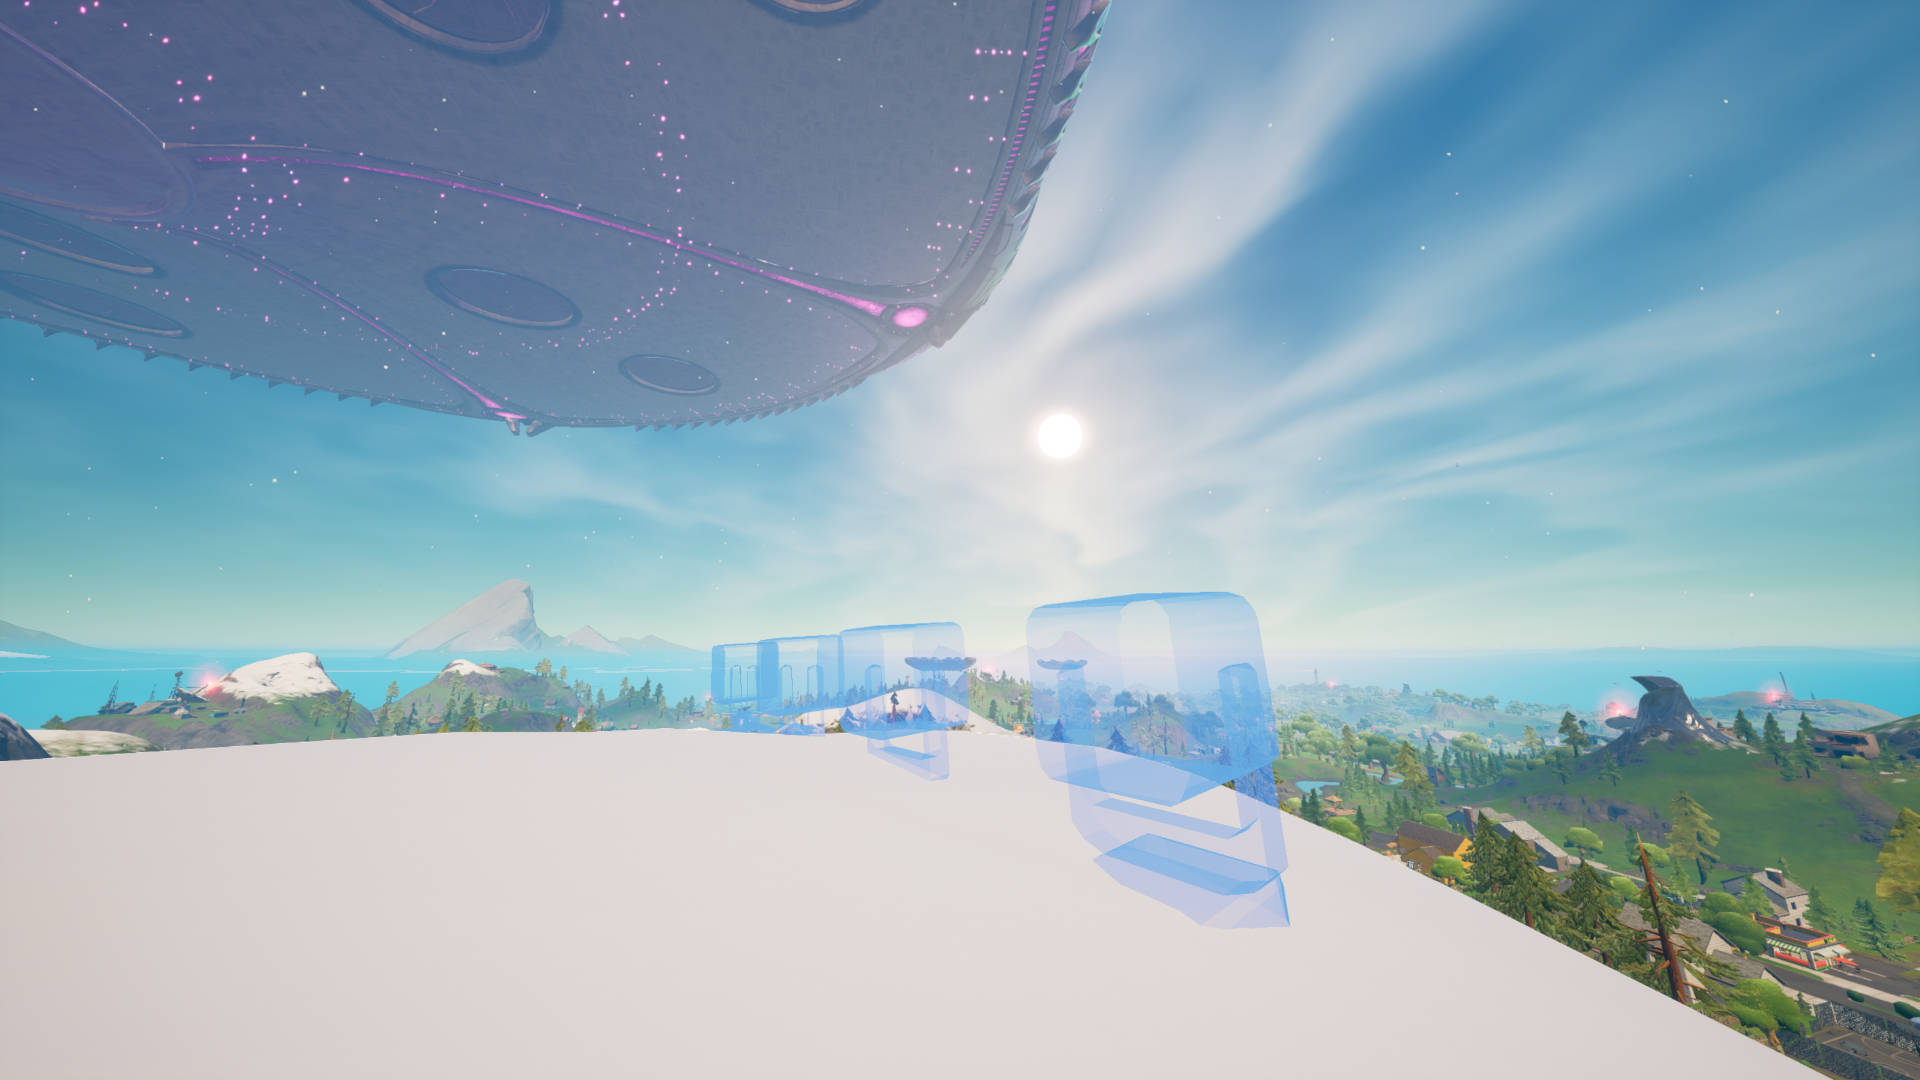 Fortnite – place alien light communication devices on mountain tops